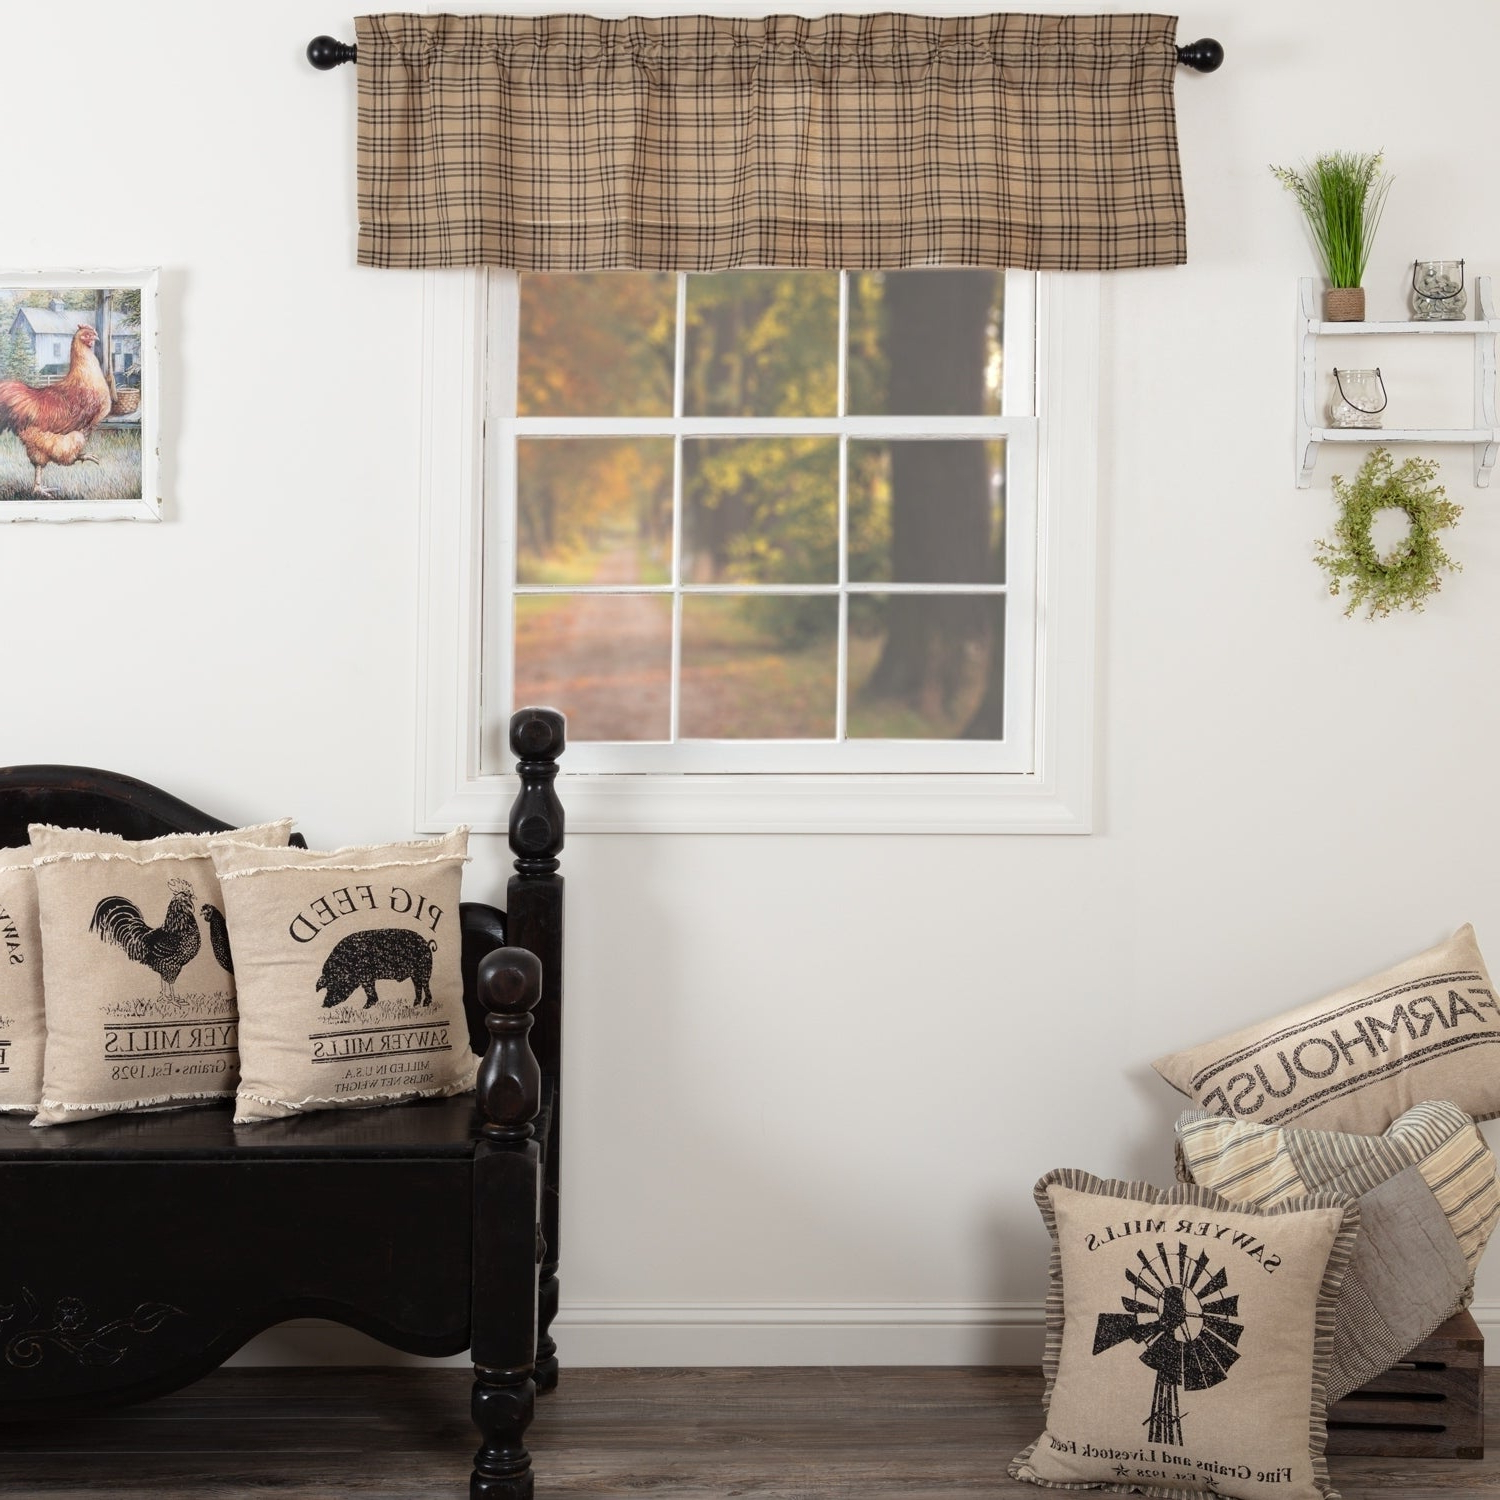 Farmhouse Kitchen Curtains Vhc Sawyer Mill Plaid Valance Rod Pocket Cotton Intended For Most Popular Farmhouse Kitchen Curtains (View 8 of 20)